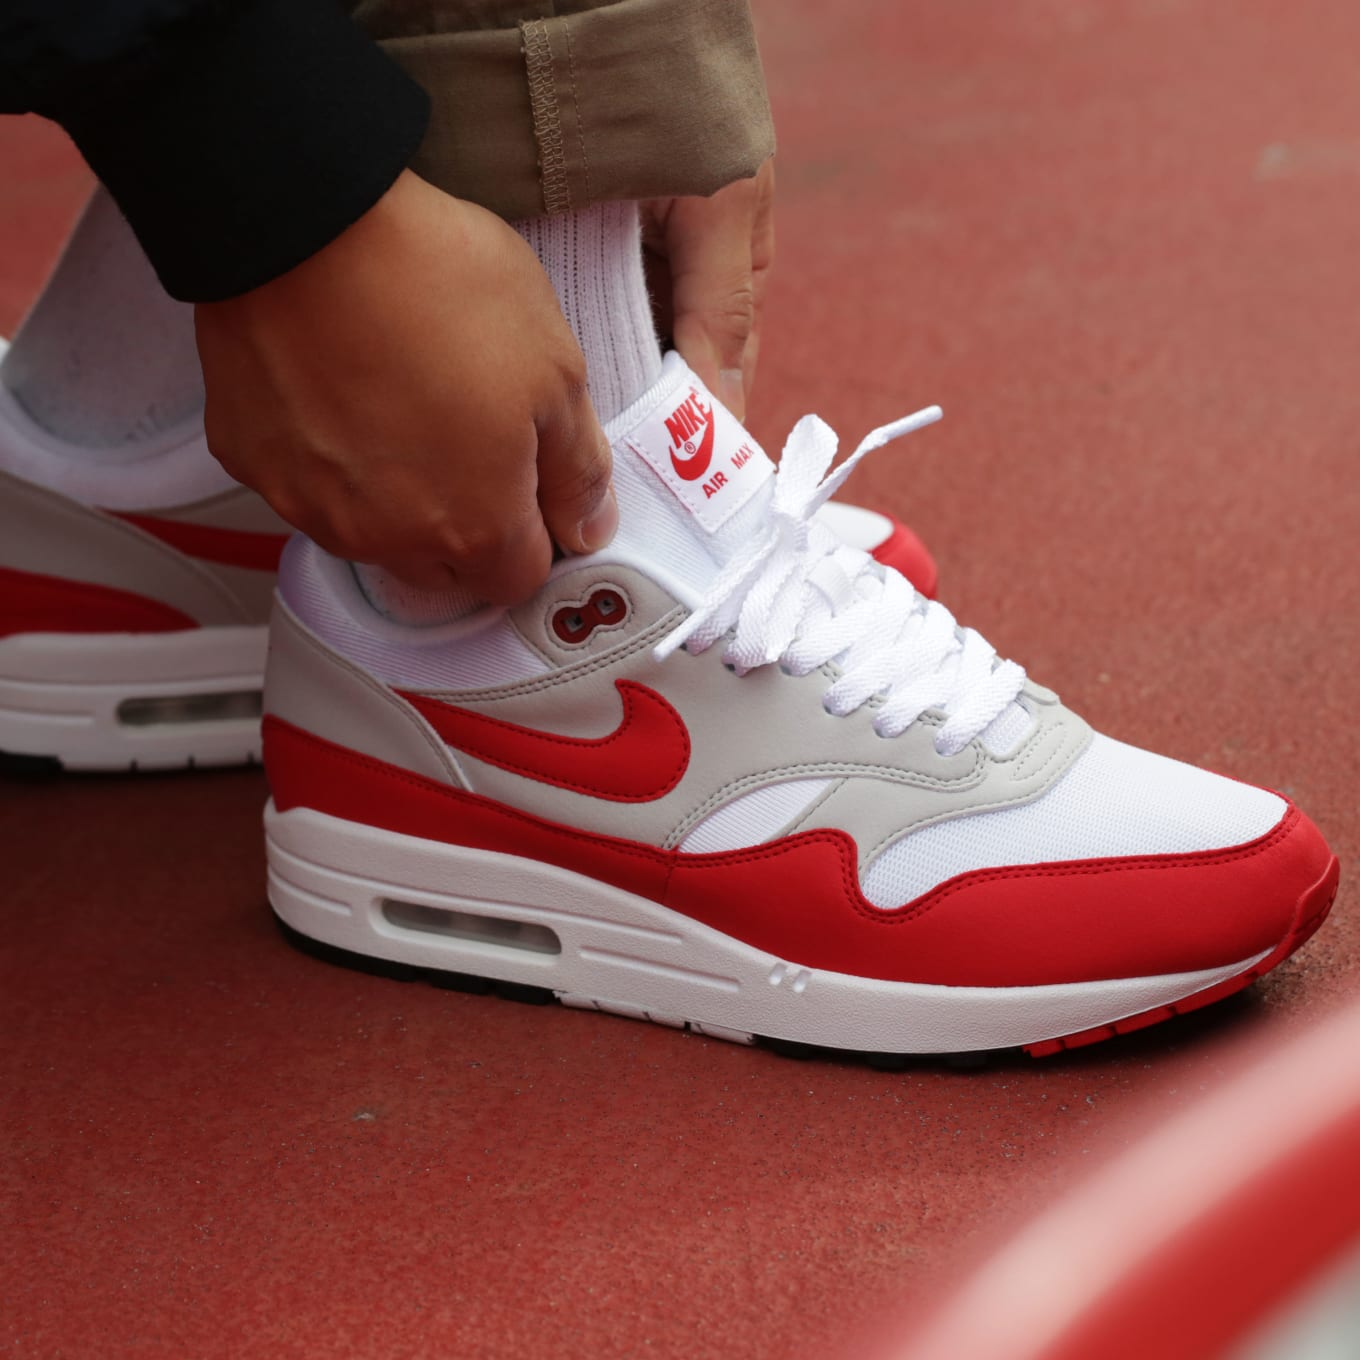 b68932cd21 Nike Air Max 1 OG Red Release Date 908375-103 | Sole Collector